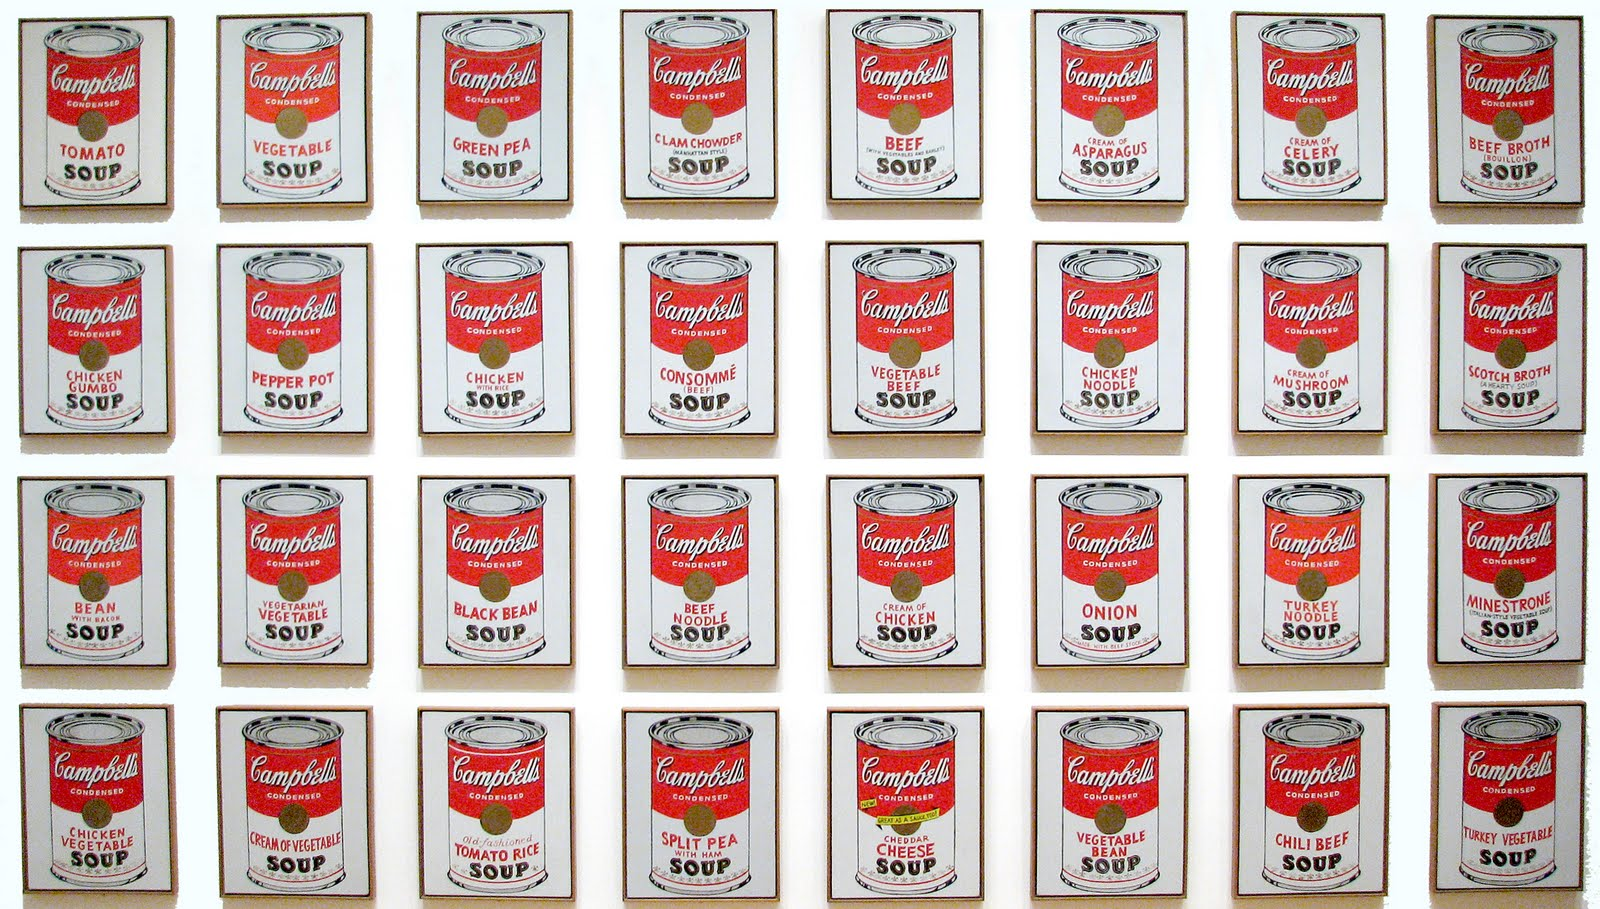 campbells_soup_andy_warhol_moma